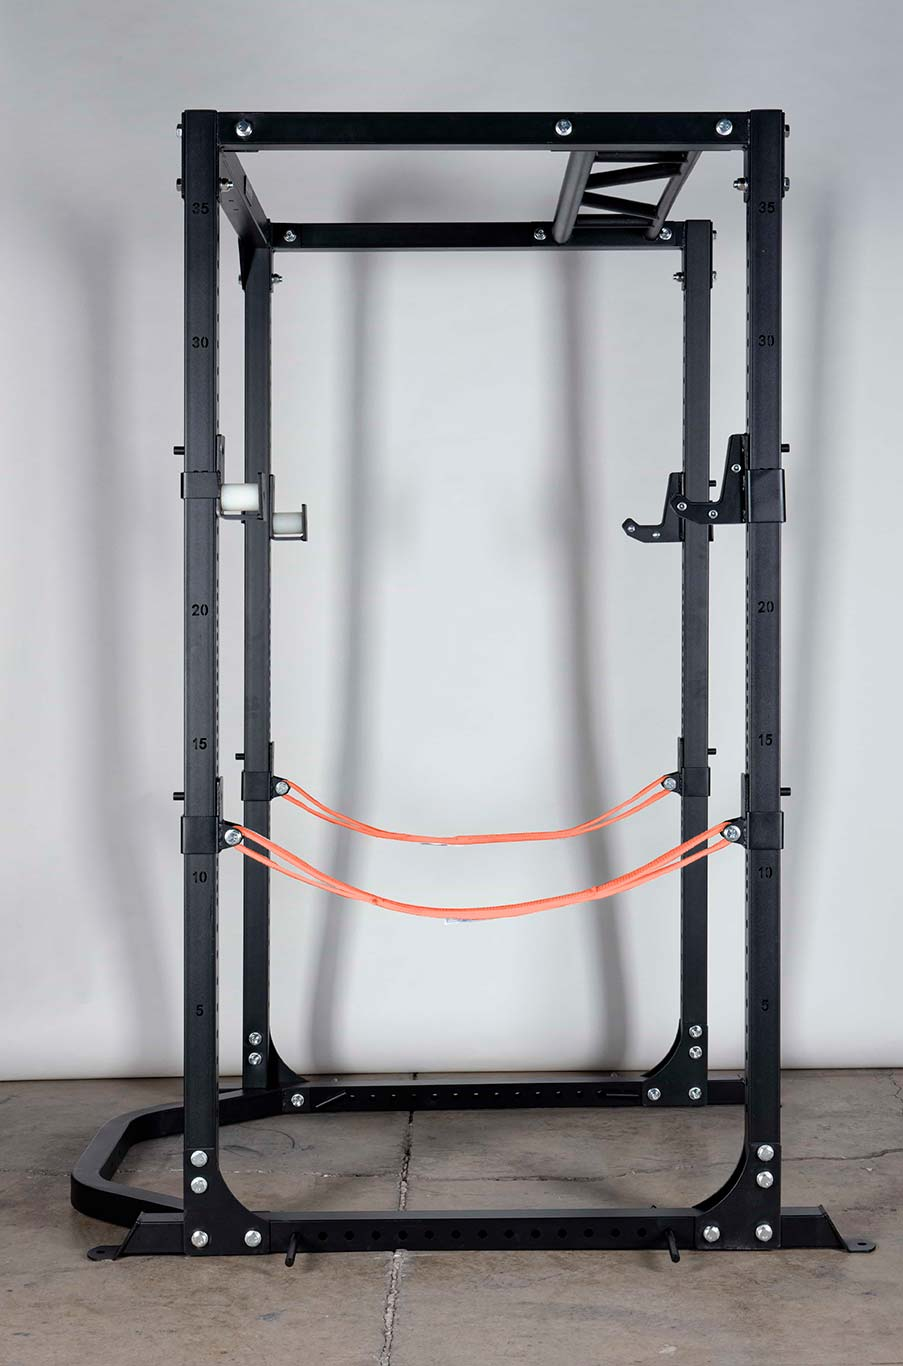 Squat Rack - The Brute 2.1 By B.o.S.